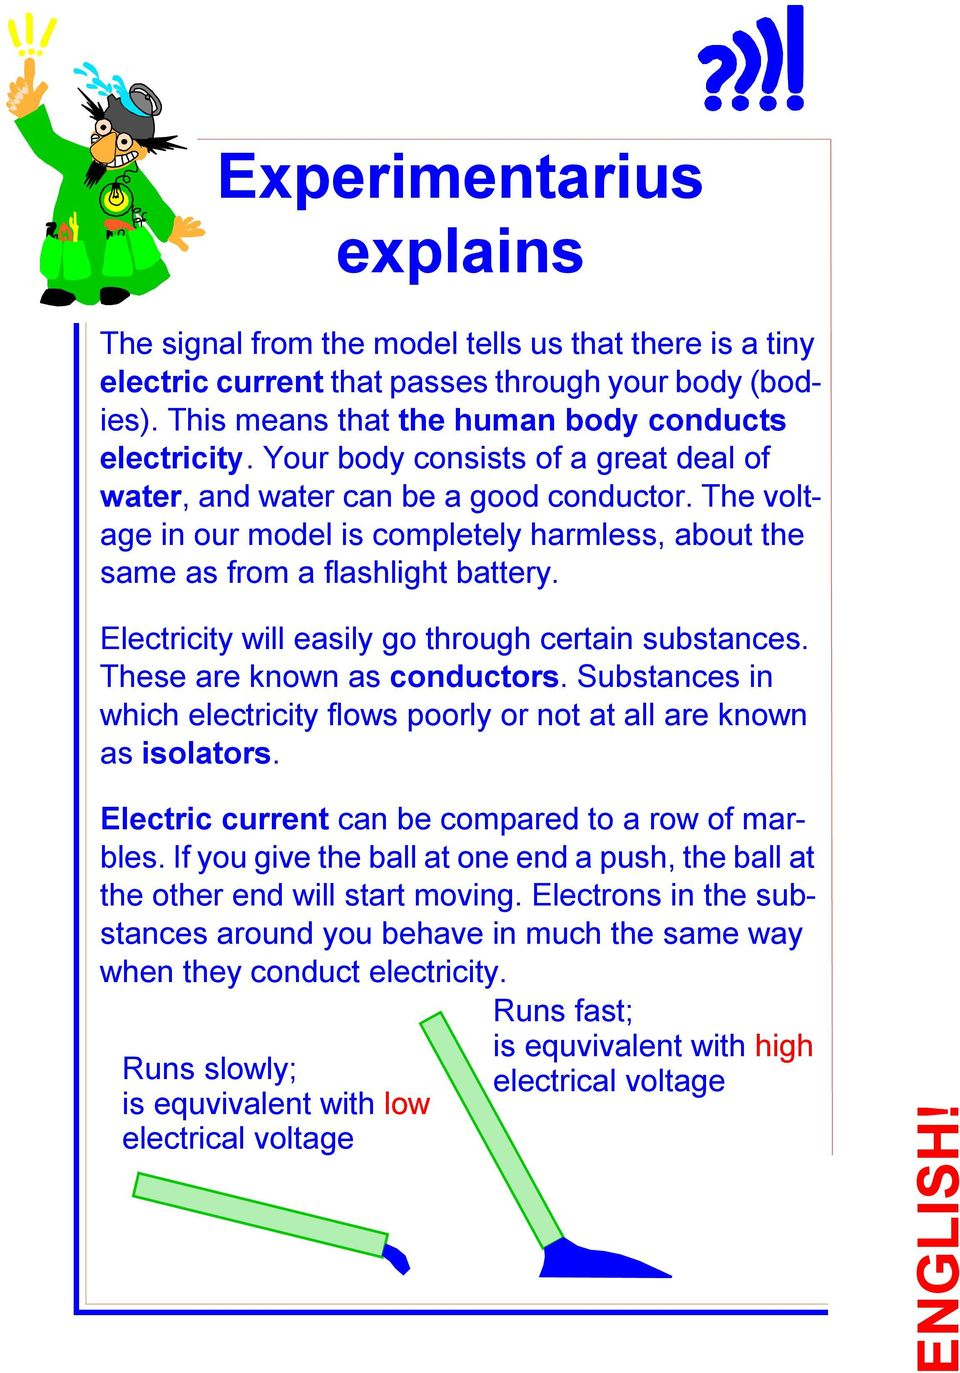 Electricity will easily go through certain substances. These are known as conductors. Substances in which electricity flows poorly or not at all are known as isolators.